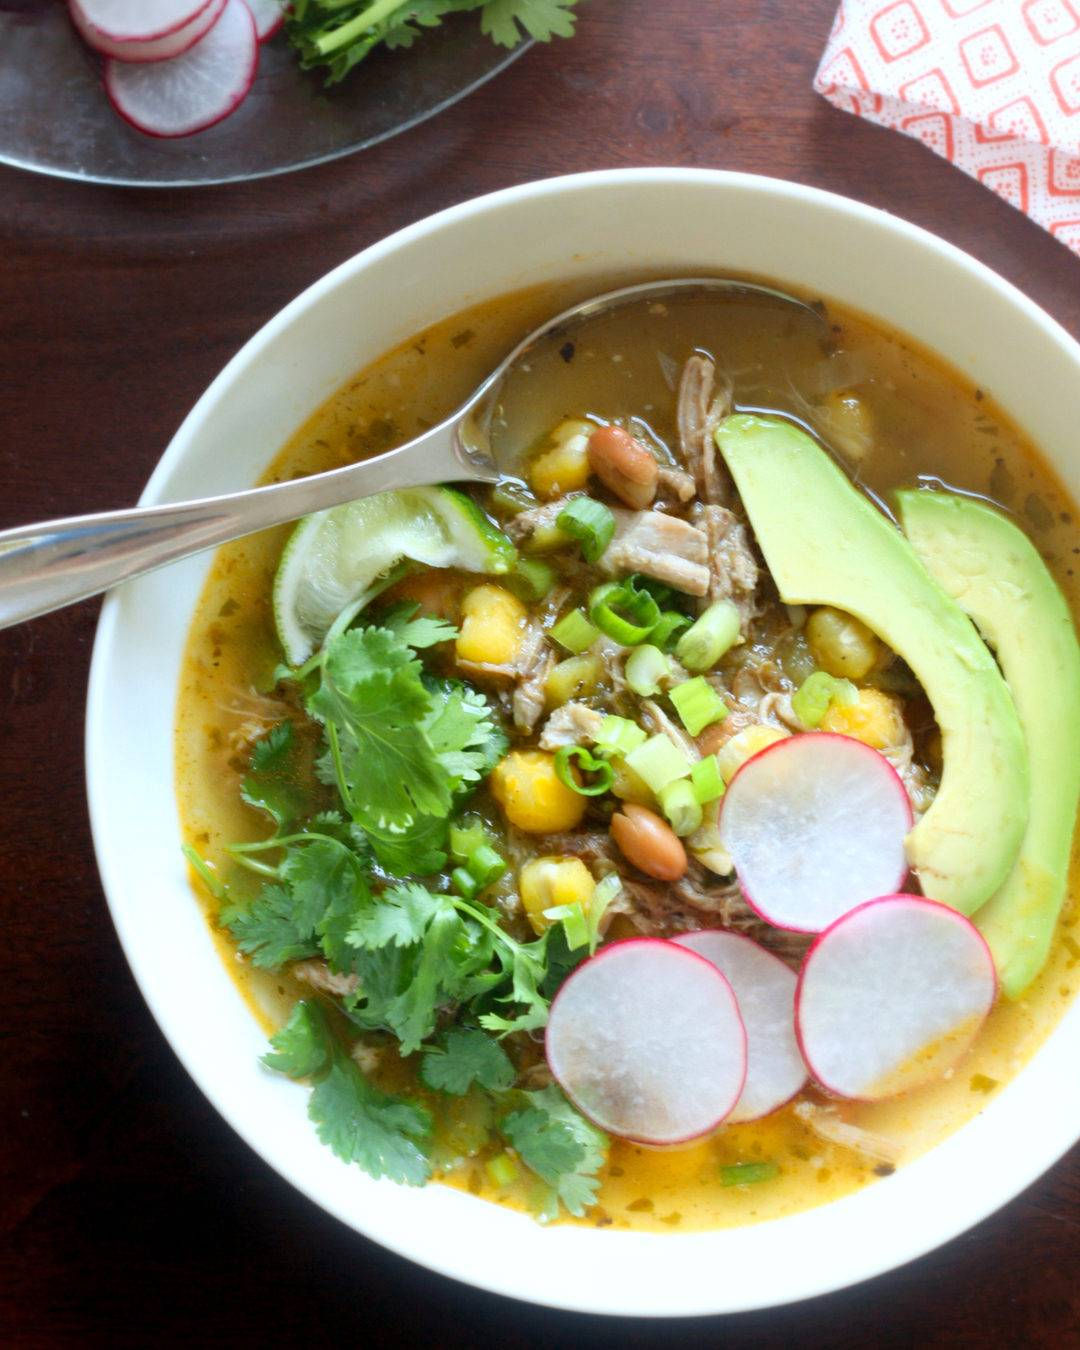 Bowl of Pork Posole Soup with cilantro, avocado, and radish garnishes